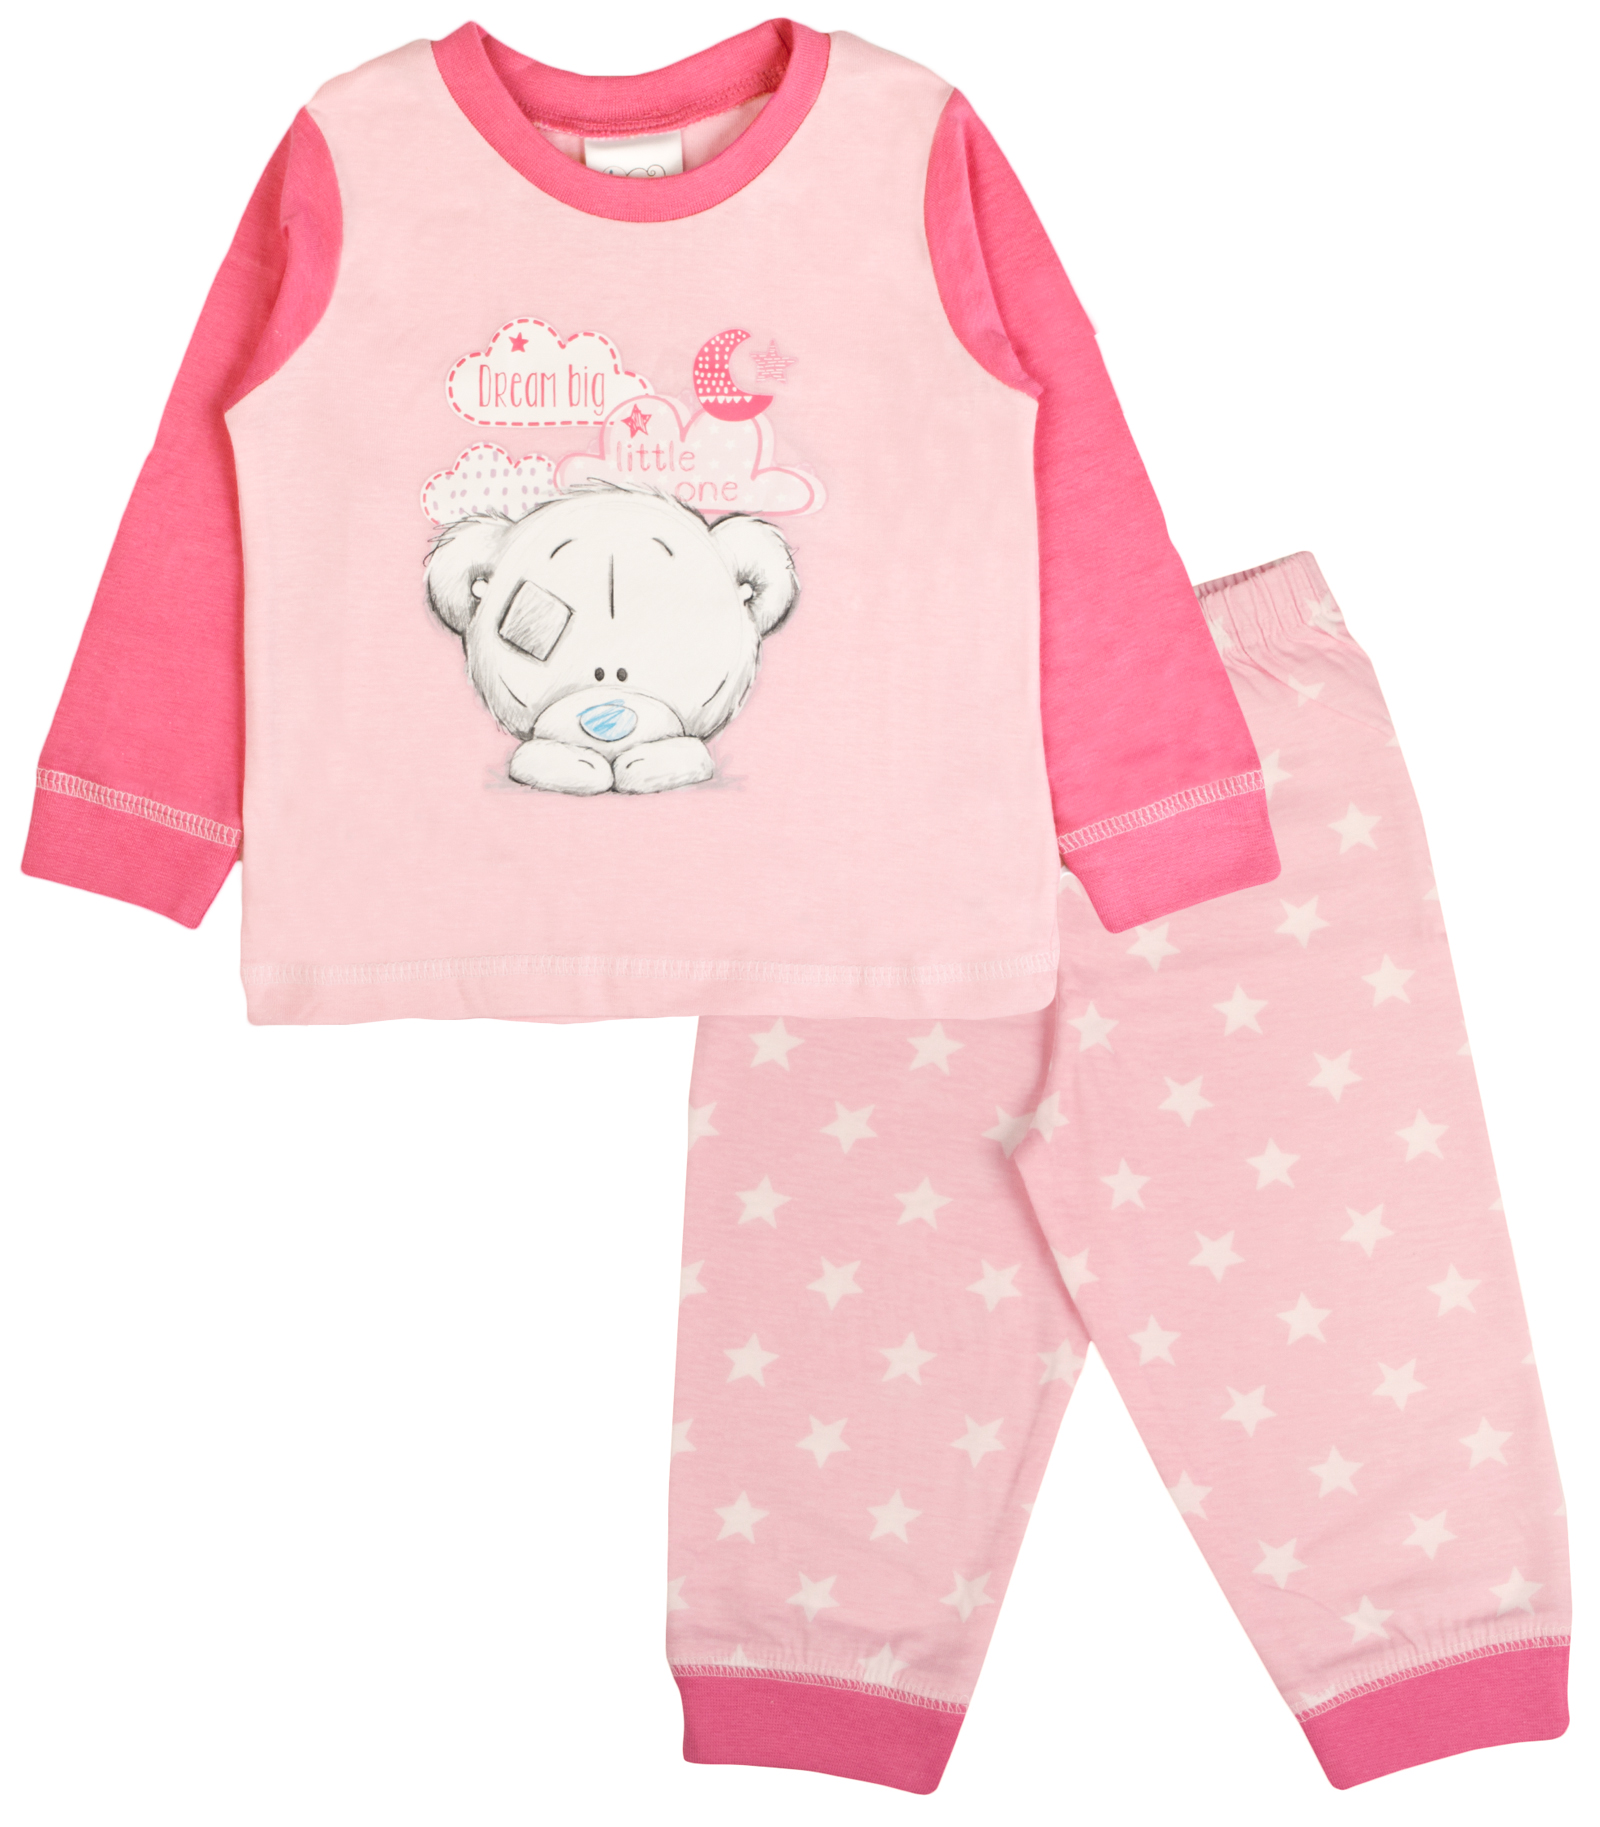 a7a4c5792 Baby Boys Girls Pyjamas Kids Toddlers Me To You Pjs Cute Tatty Teddy ...